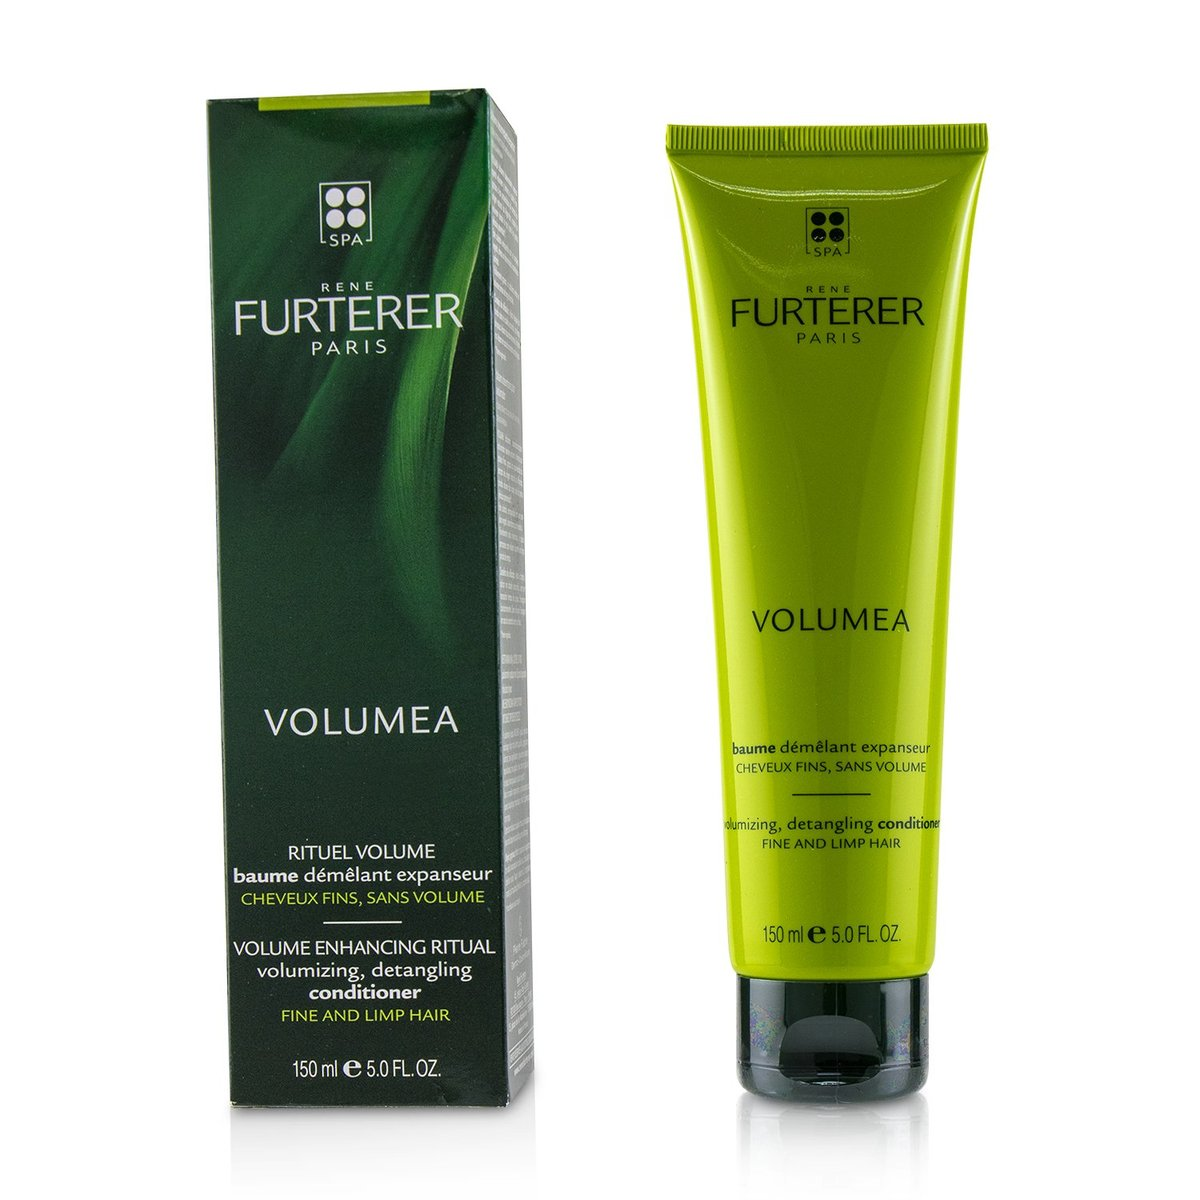 Volumea Volume Enhancing Ritual Volumizing, Detangling Conditioner (Fine and Limp Hair)  -[Parallel